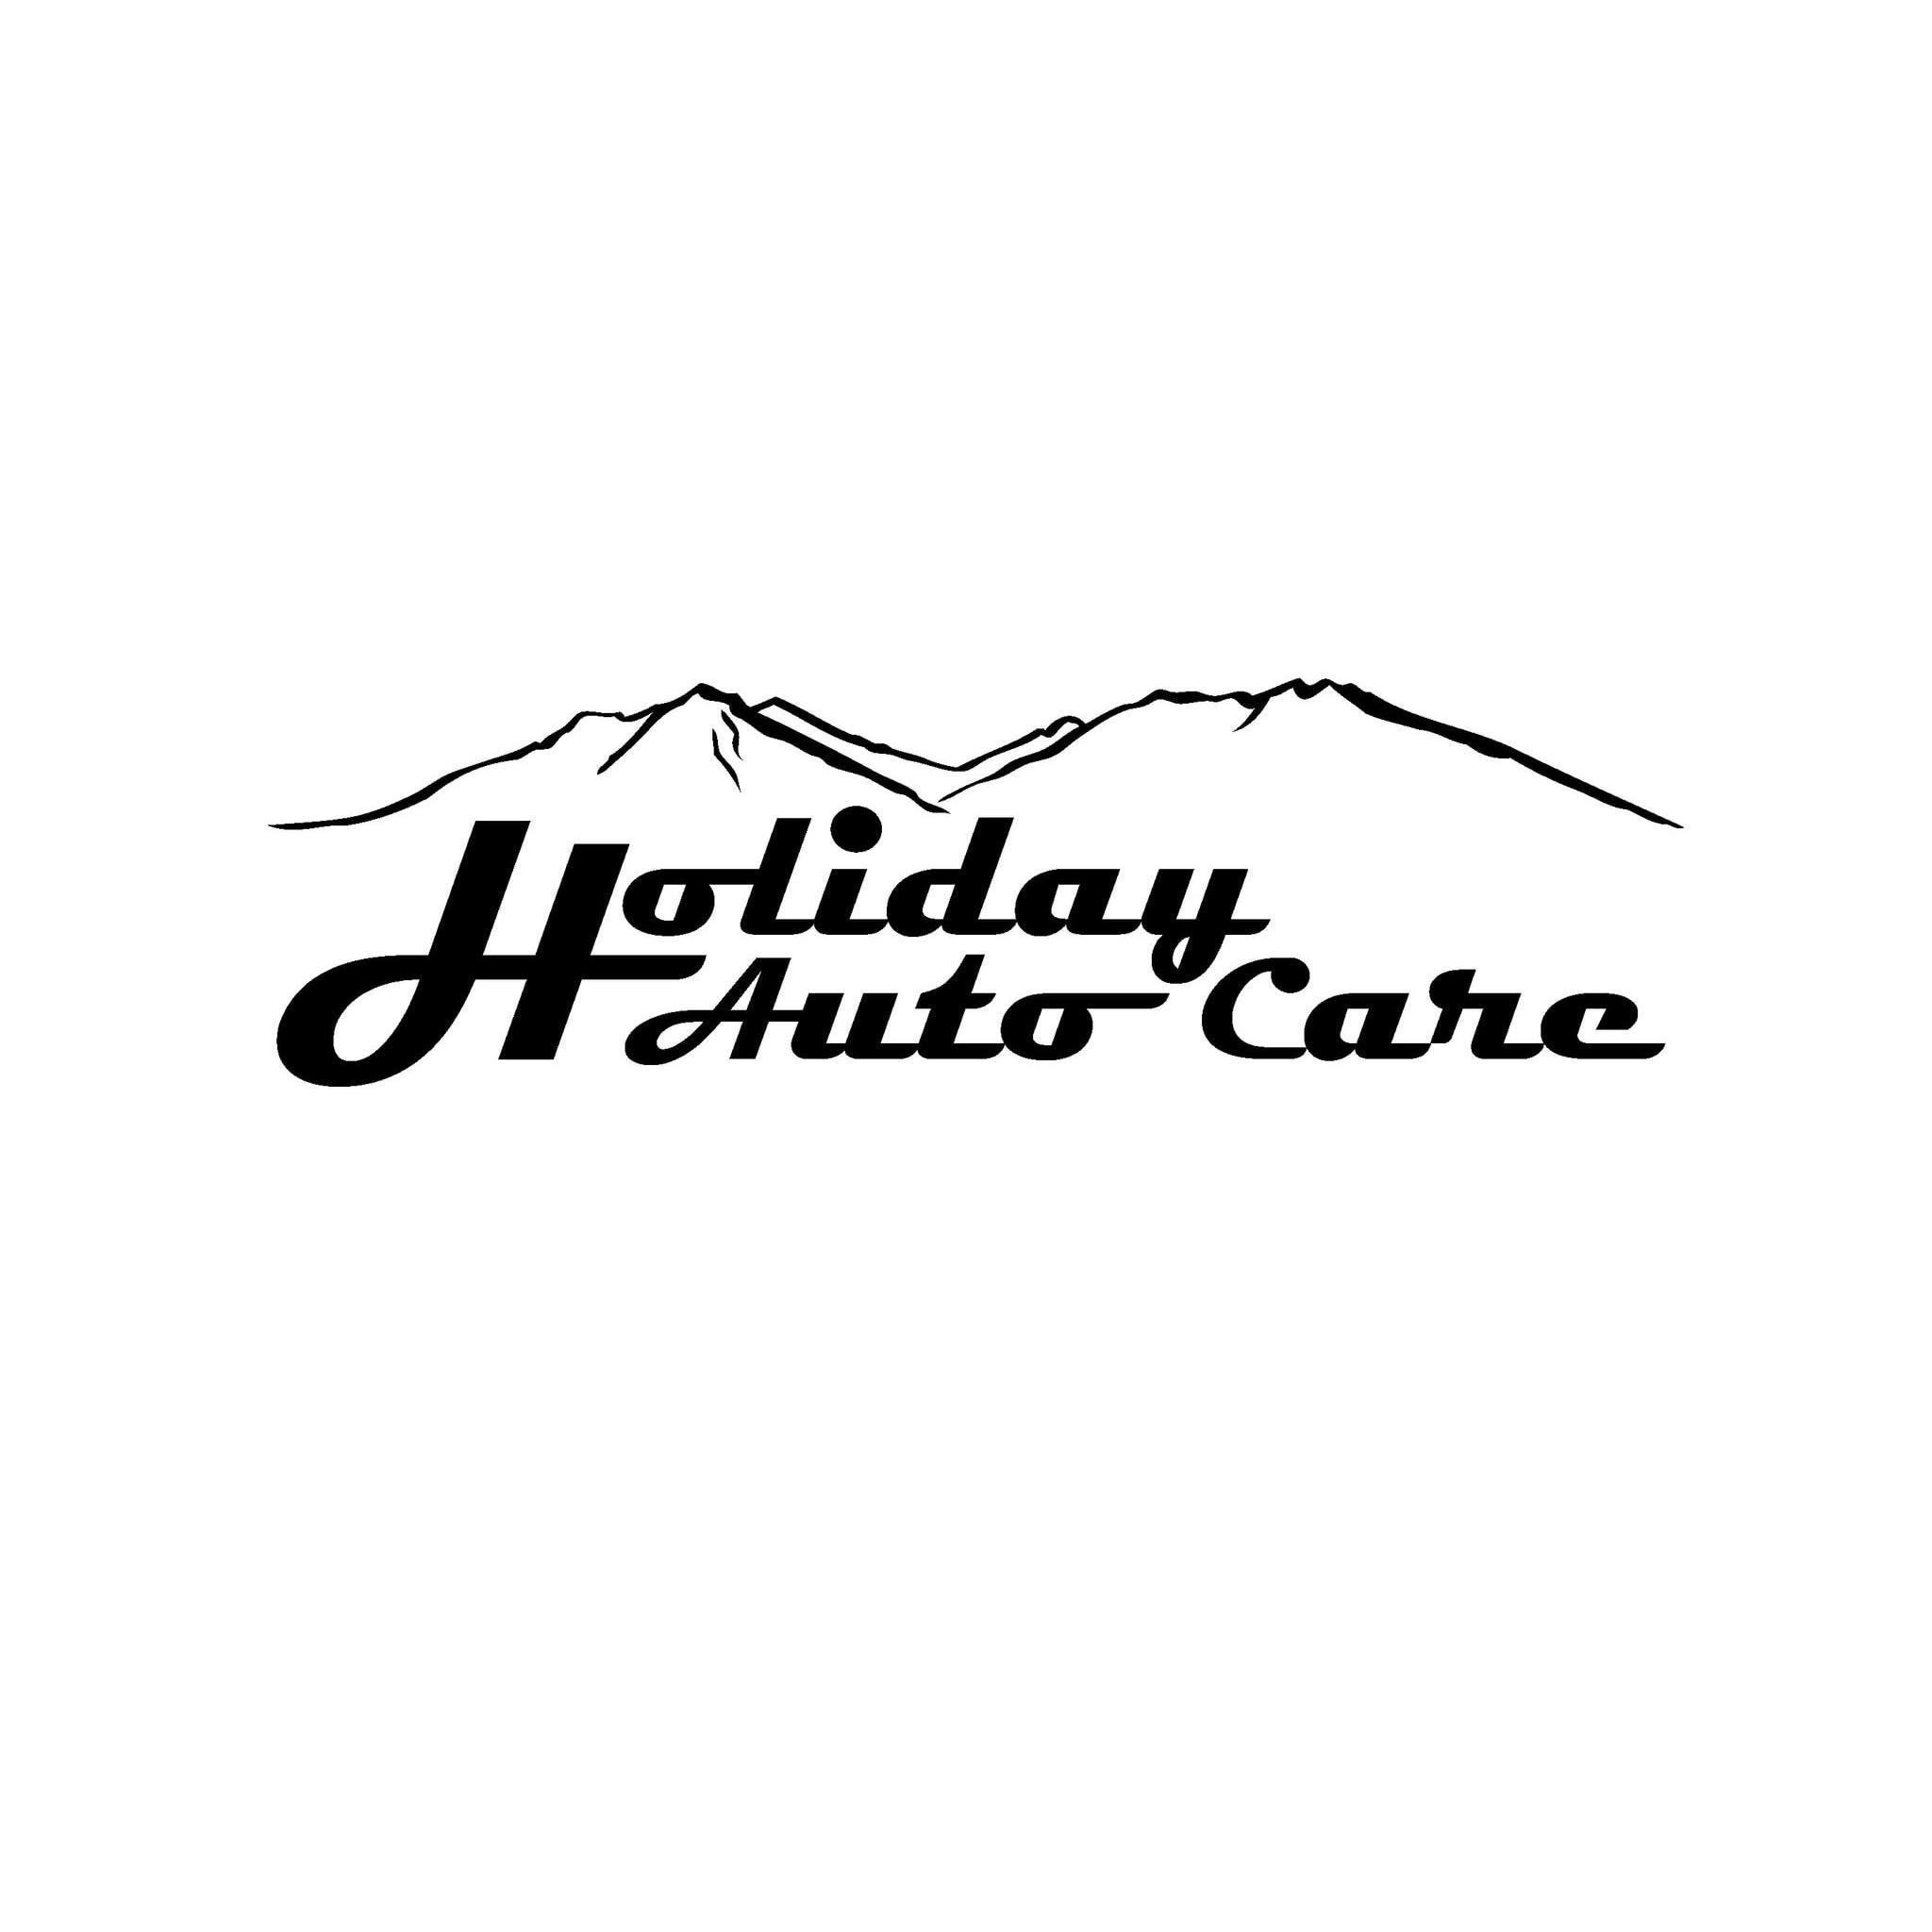 Holiday Auto Care - Denver, CO - General Auto Repair & Service